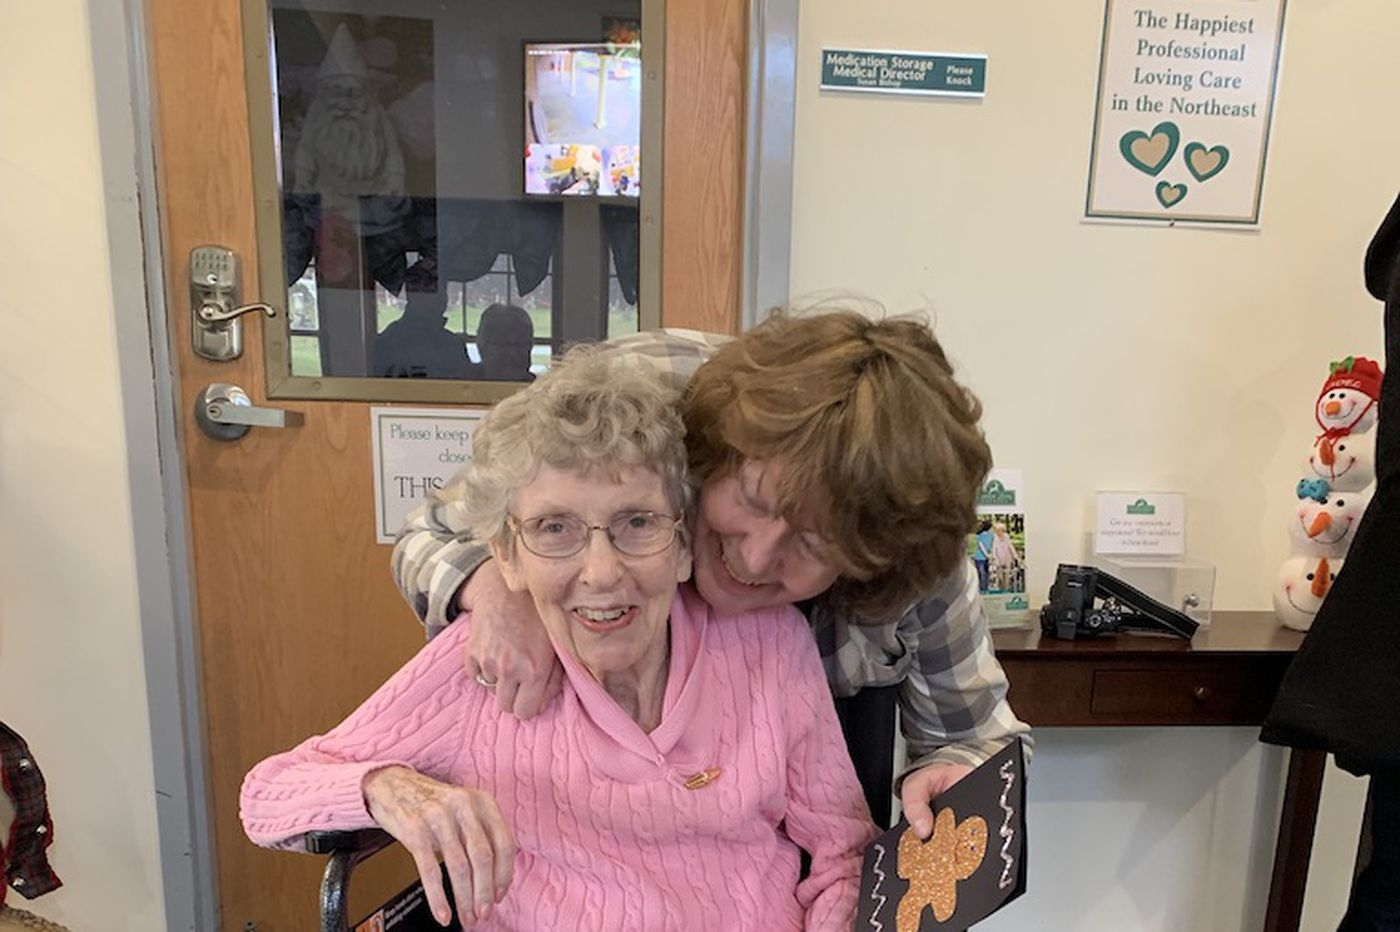 With COVID-19 restrictions, I worry I may never see my elderly mom again   Opinion